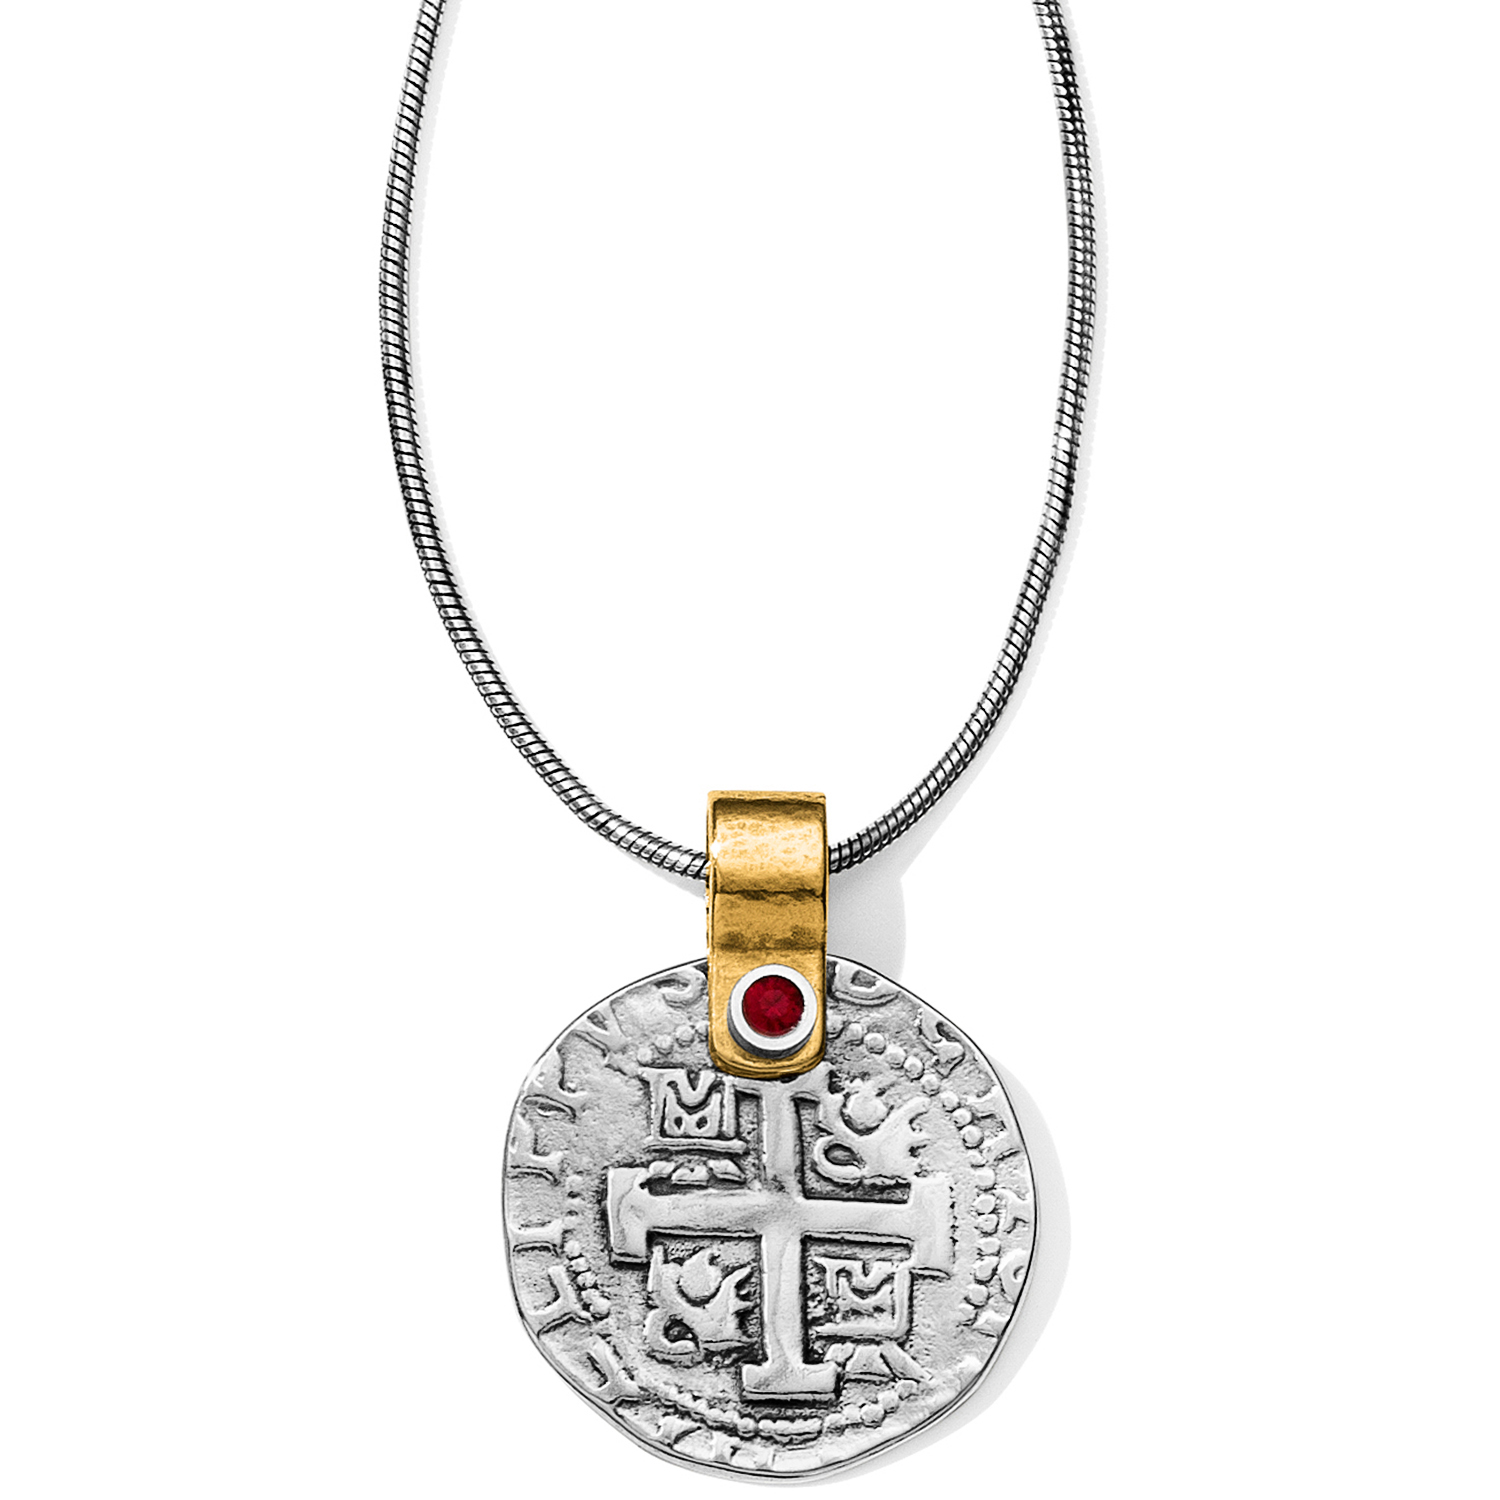 Doubloon Necklace from Brighton